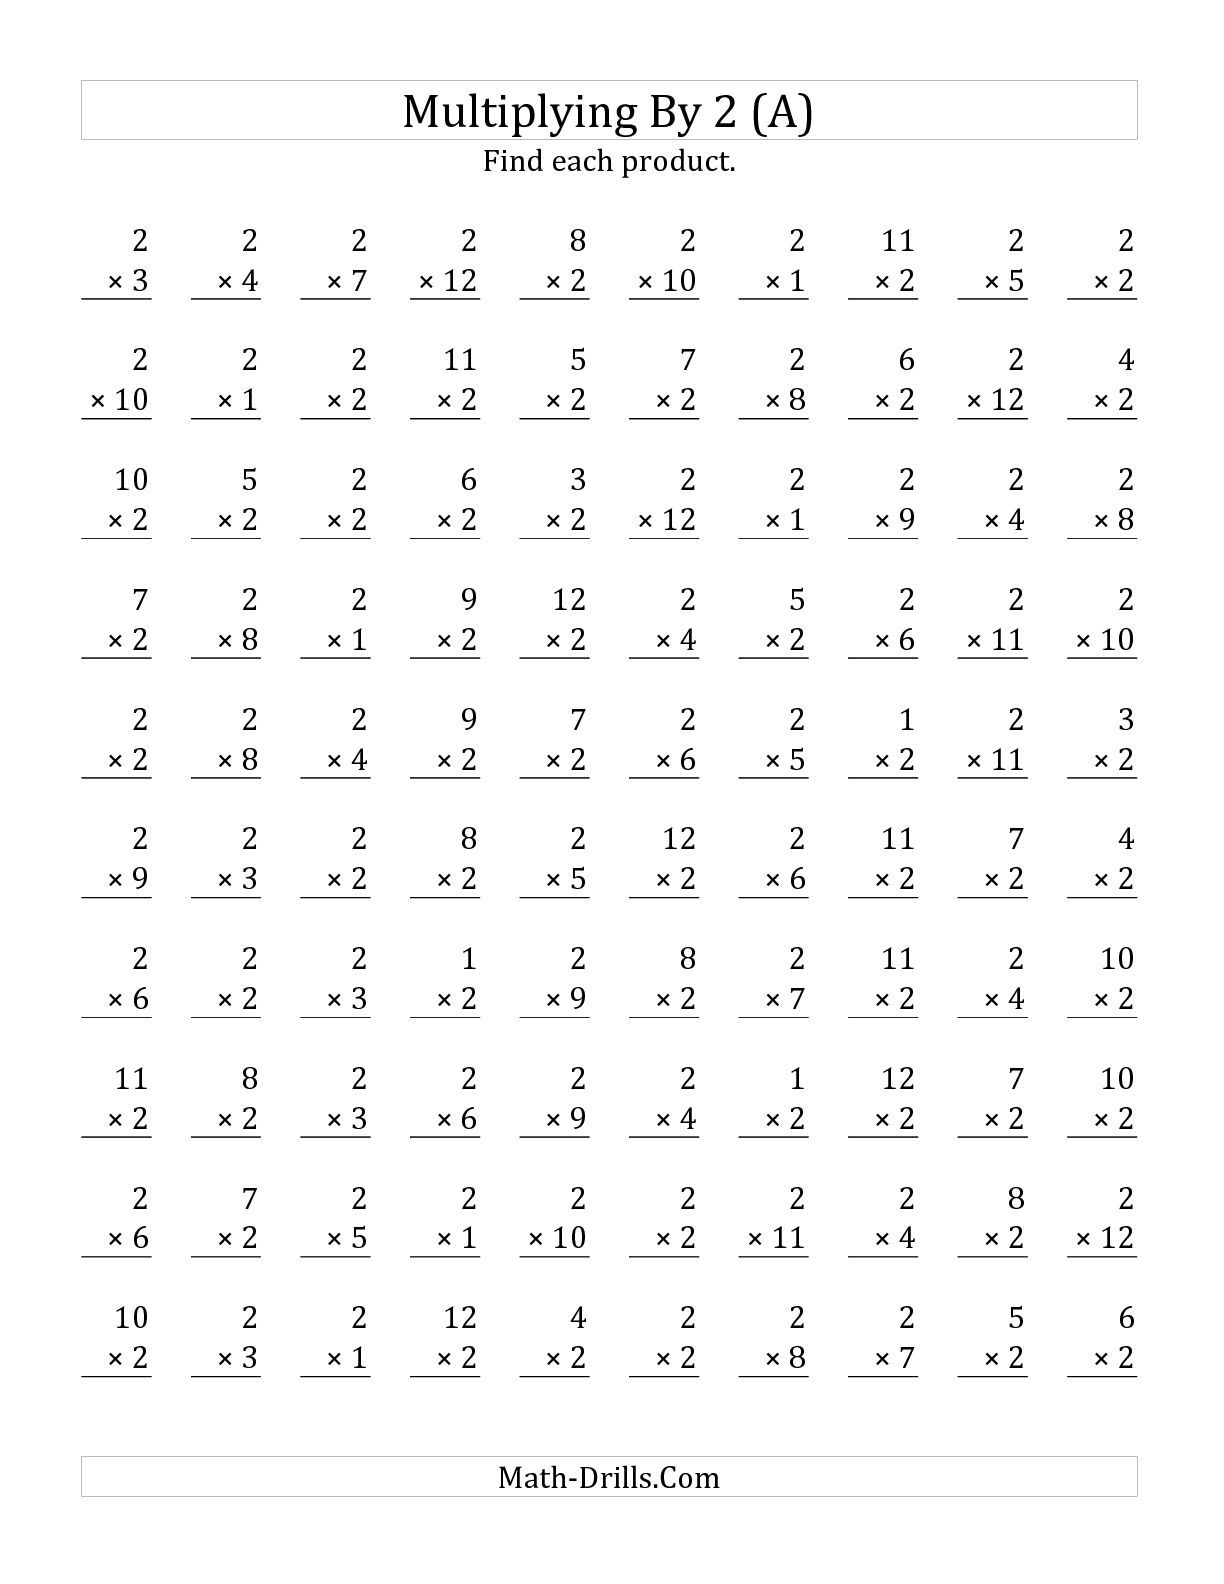 The Multiplying 1 To 122 (A) Math Worksheet From The pertaining to Multiplication Worksheets X2 X3